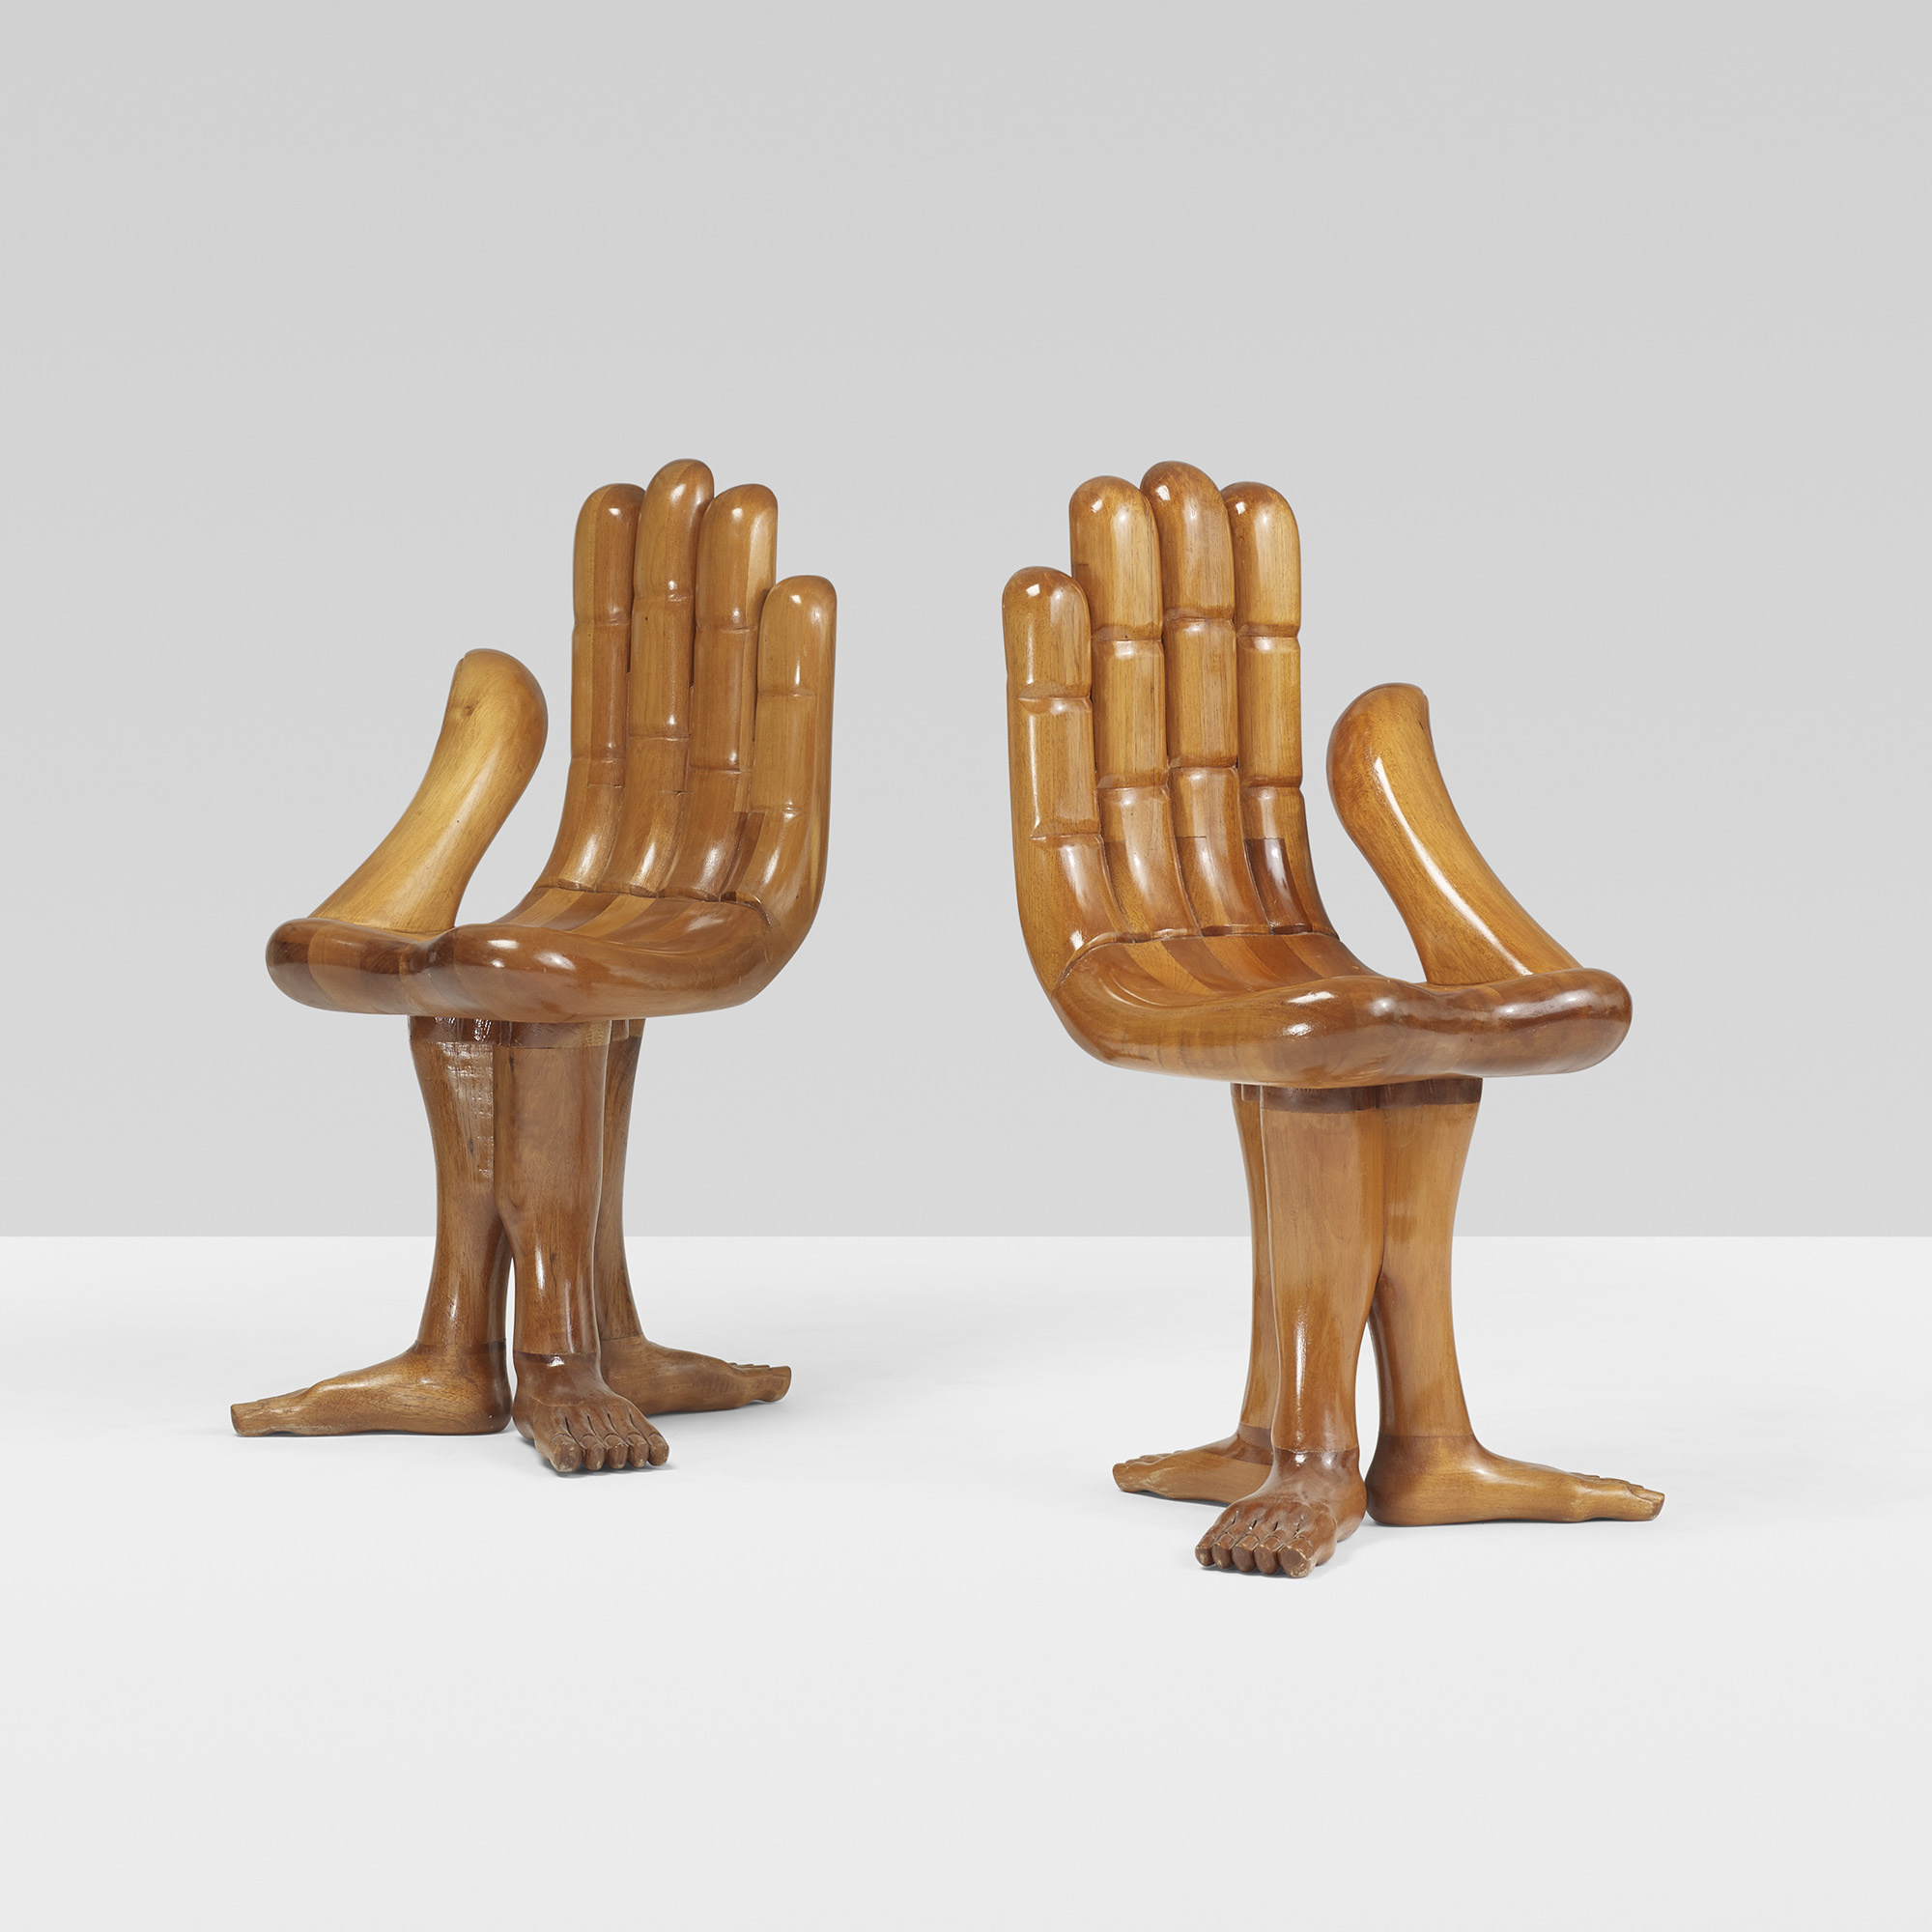 382 Pedro Friedeberg Hand Foot chairs pair Design 12 June